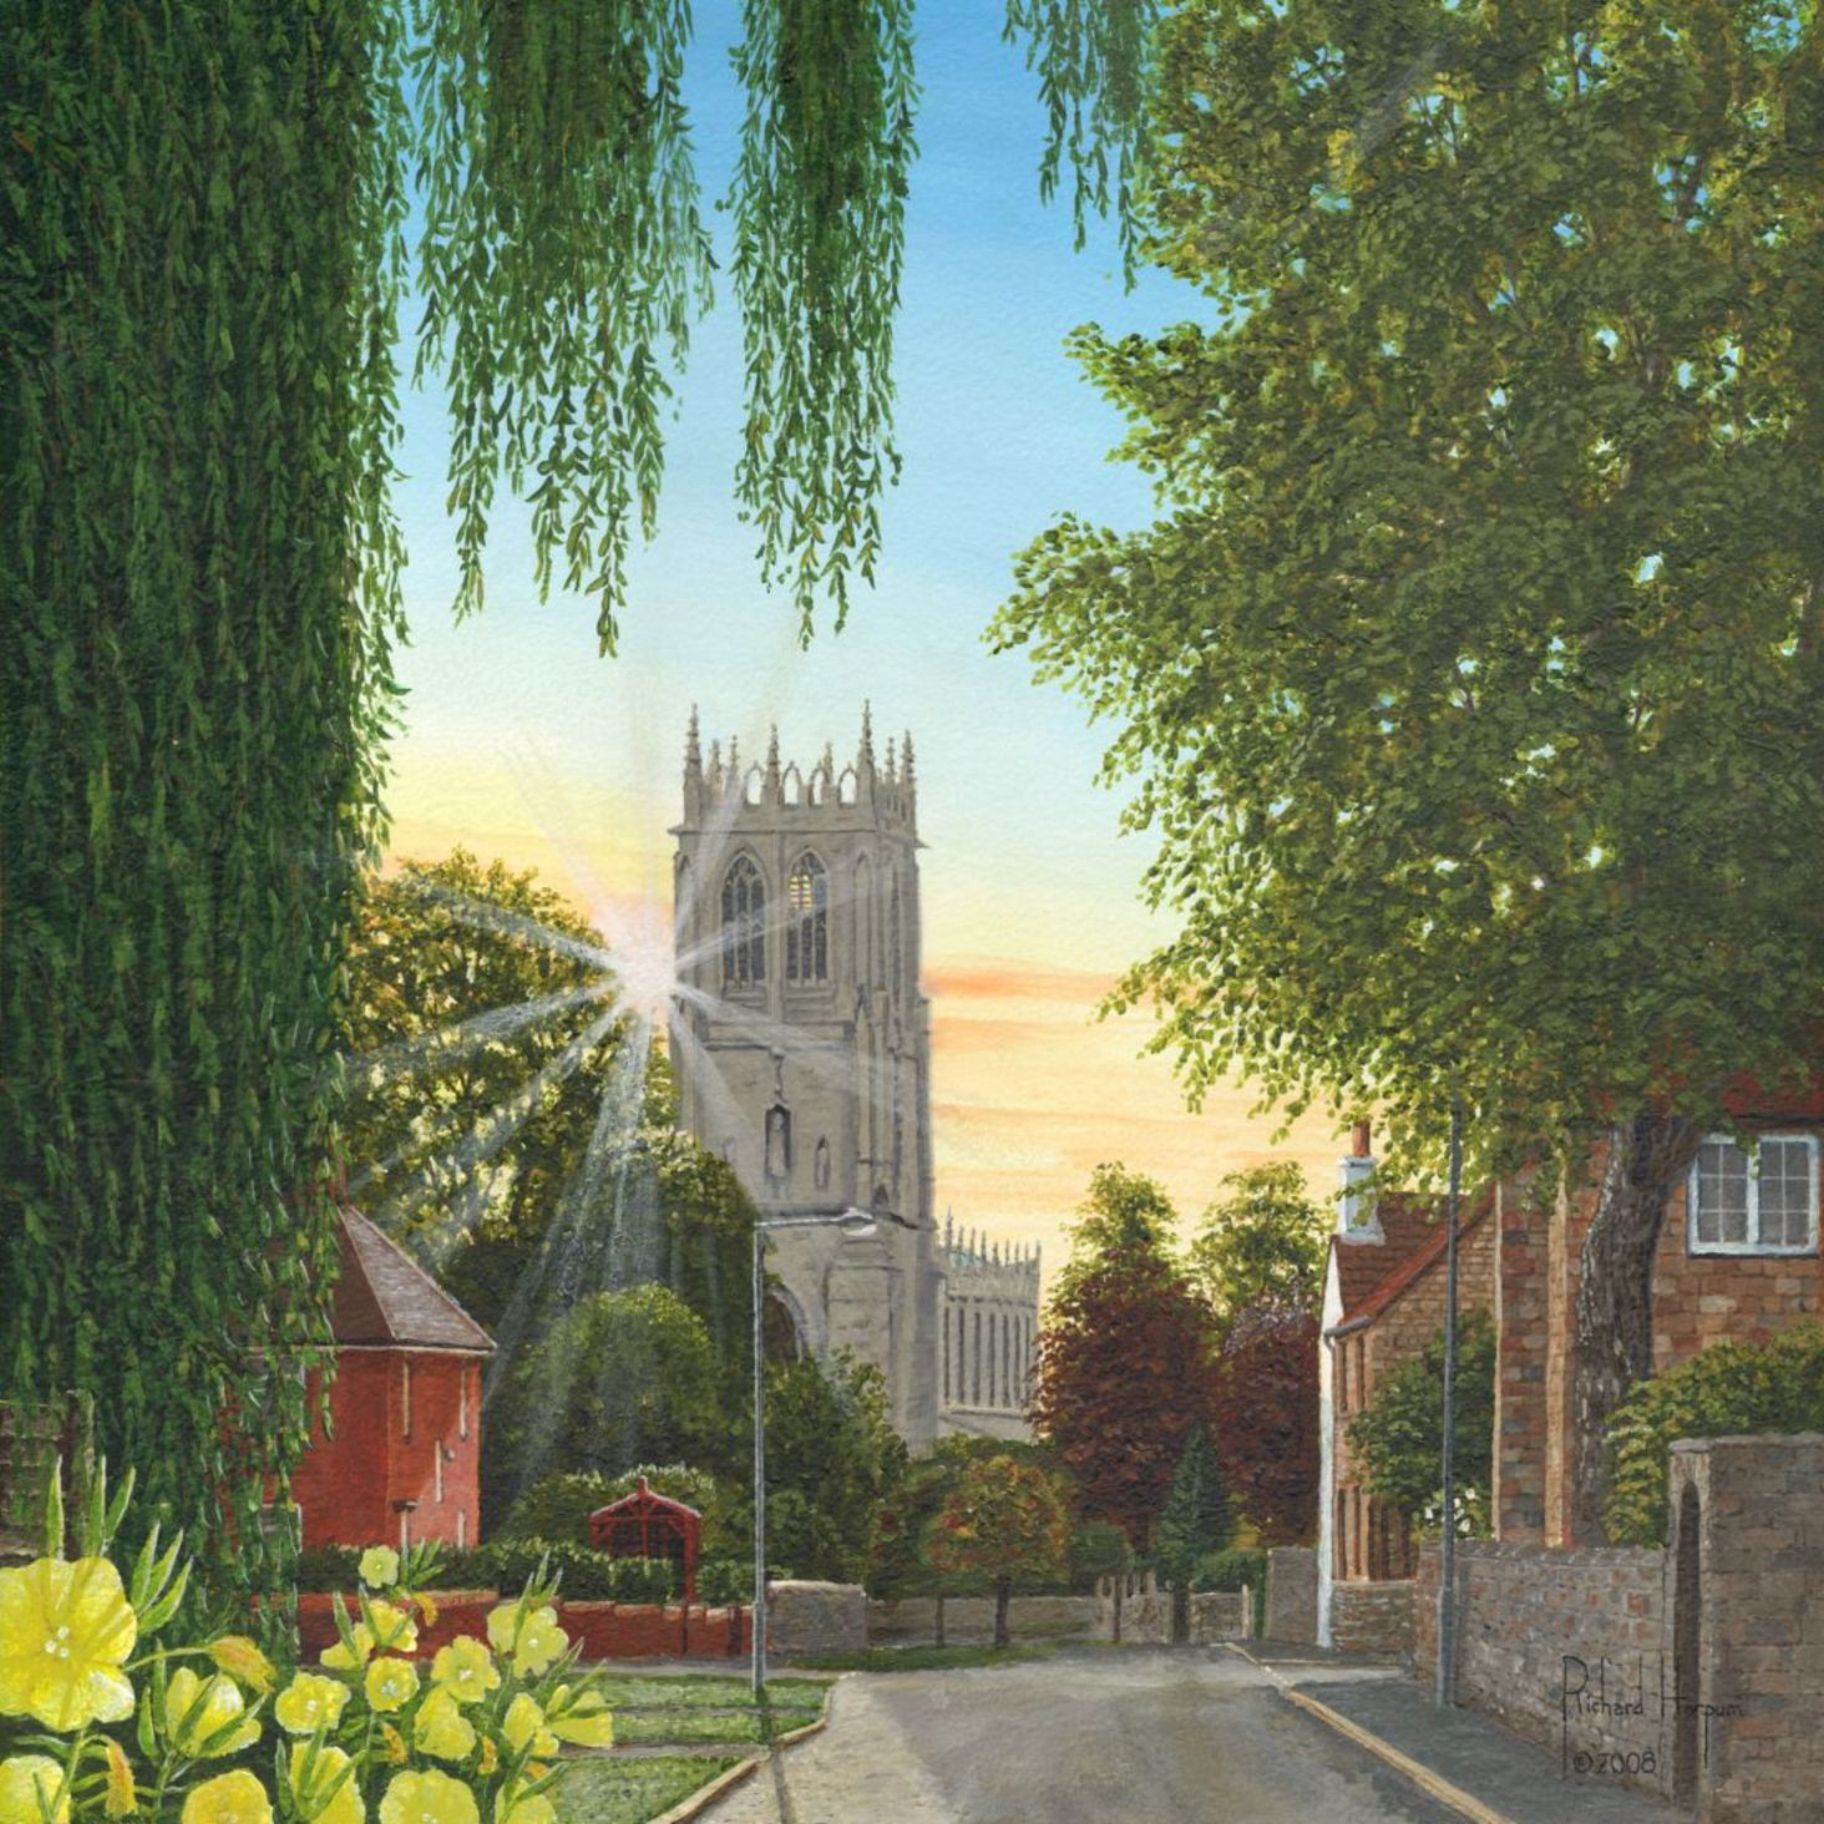 Painting - Summer Morning, St. Mary's Church, Tickhill